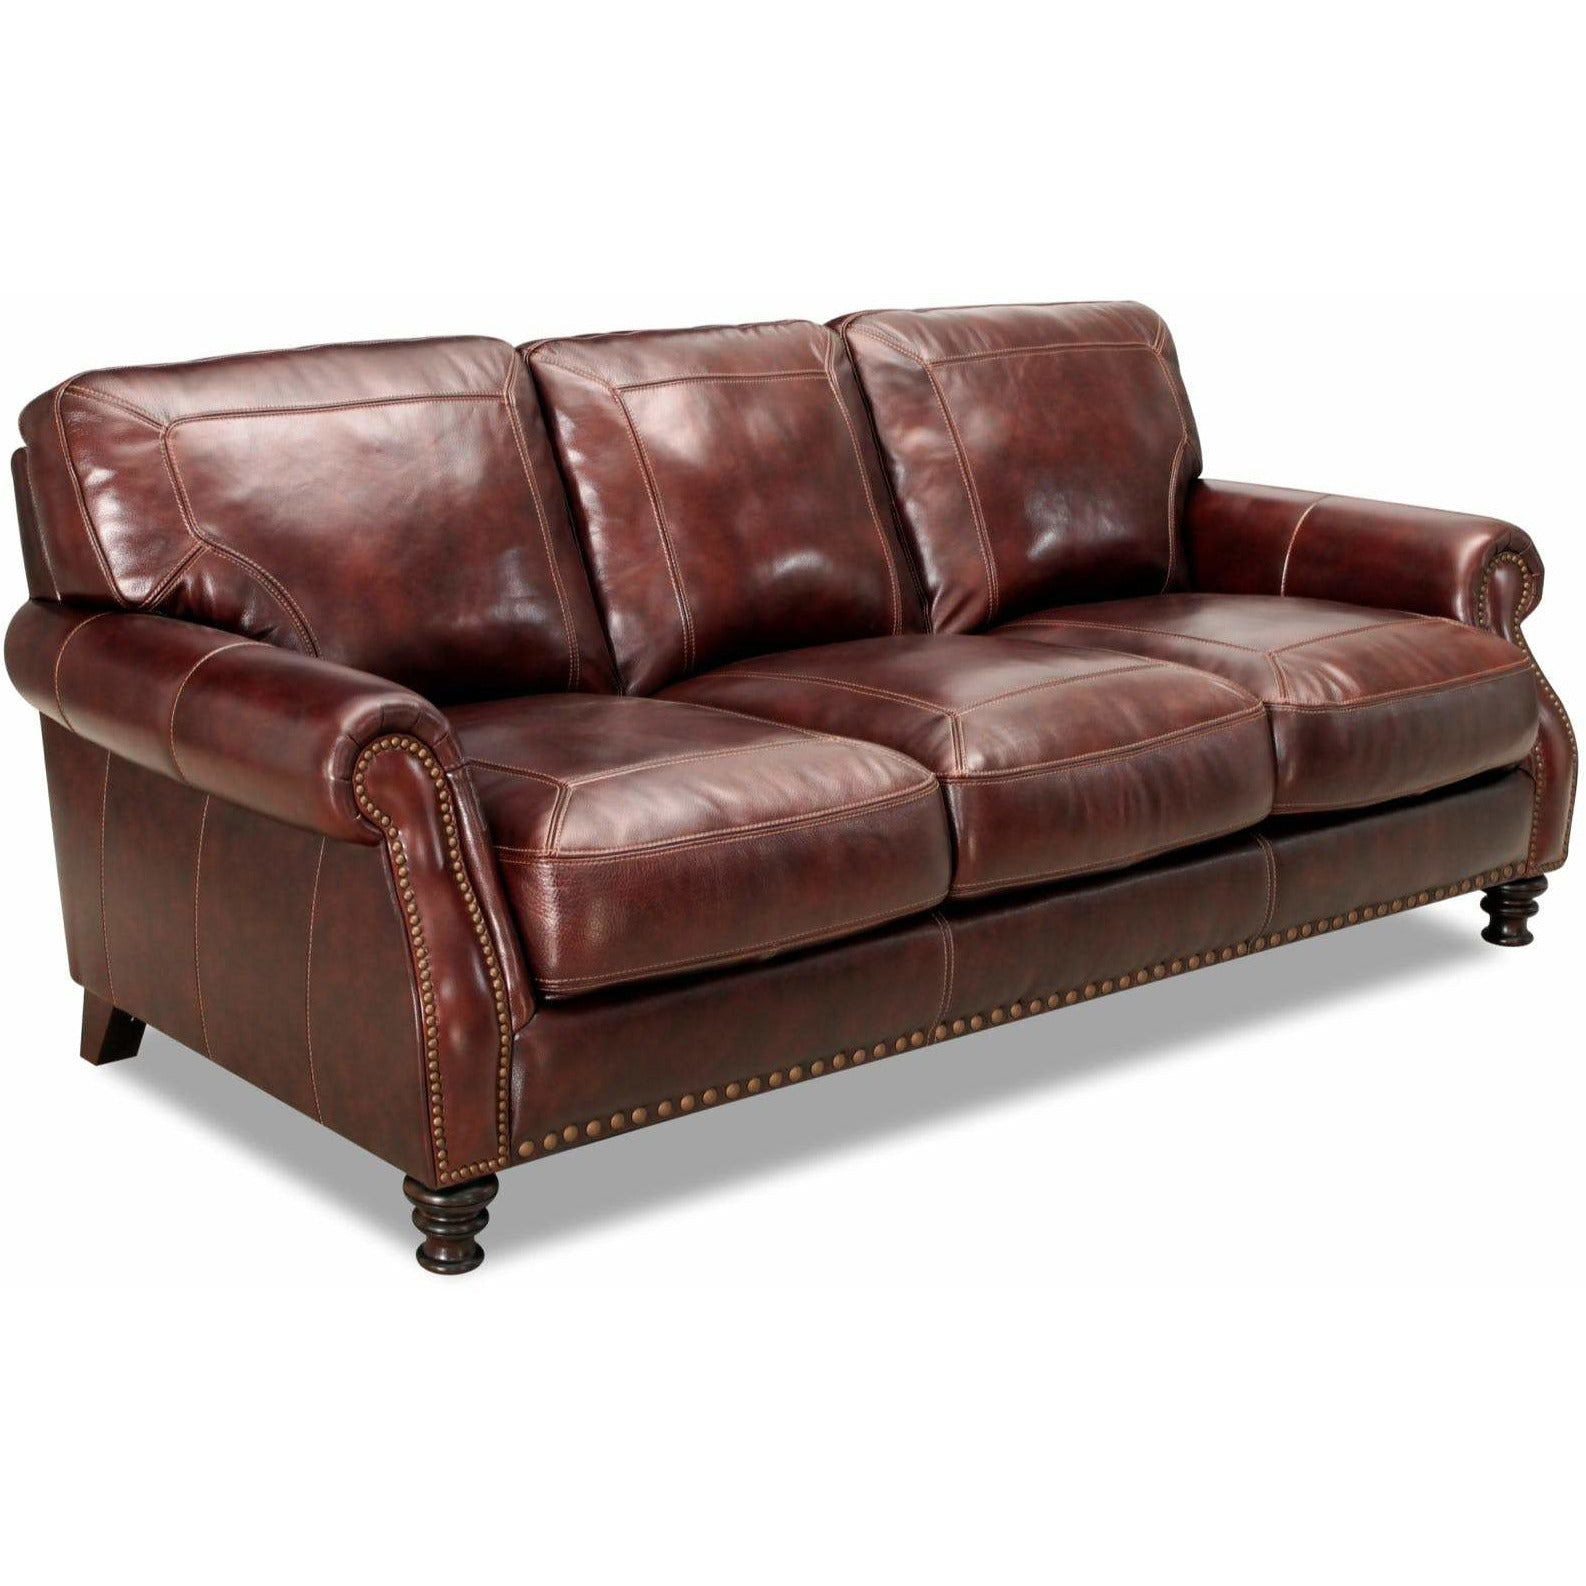 Amarillo Walnut Sofa